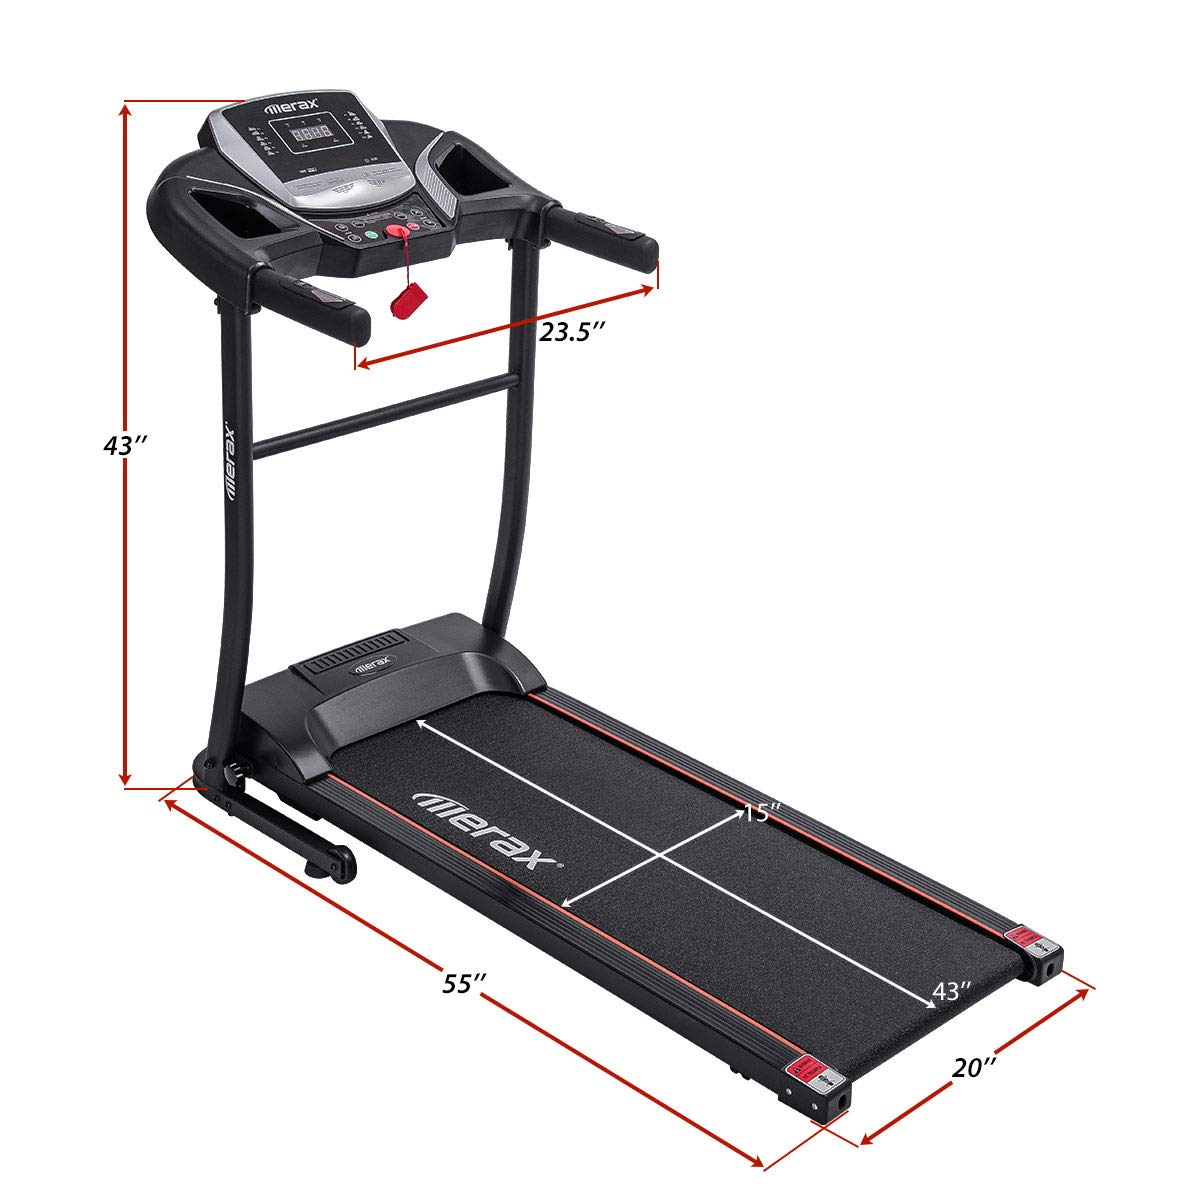 Merax Electric Folding Treadmill Easy Assembly Motorized Running Jogging Machine for Home by Merax (Image #7)